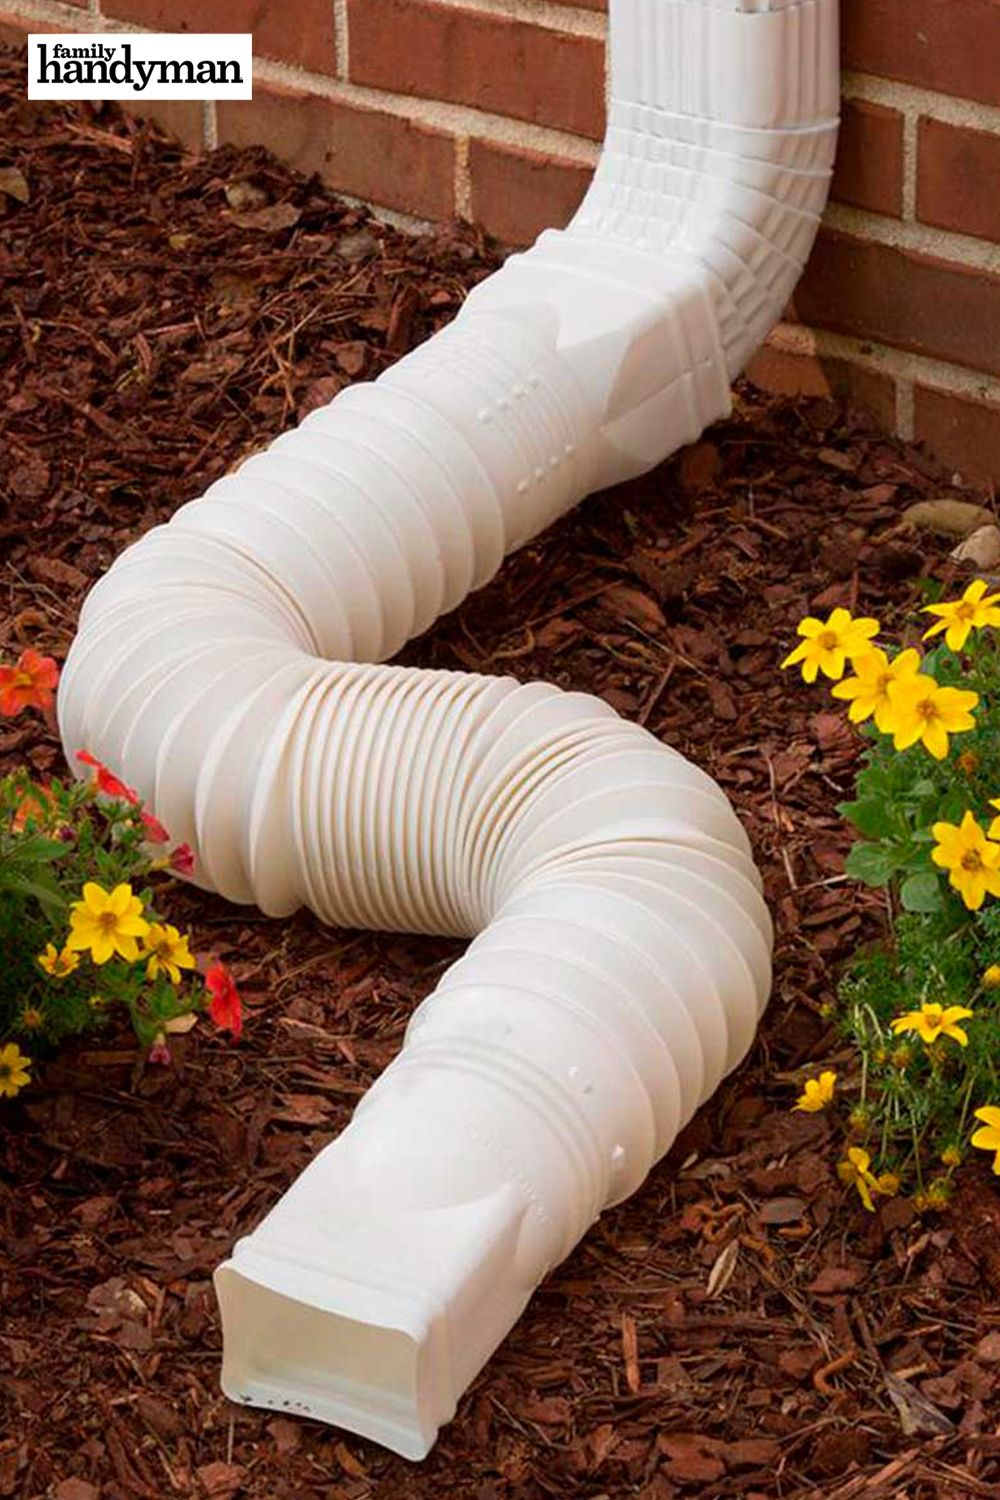 15 Things We Re Buying At The Home Depot This Spring In 2020 Downspout The Home Depot Spring Family